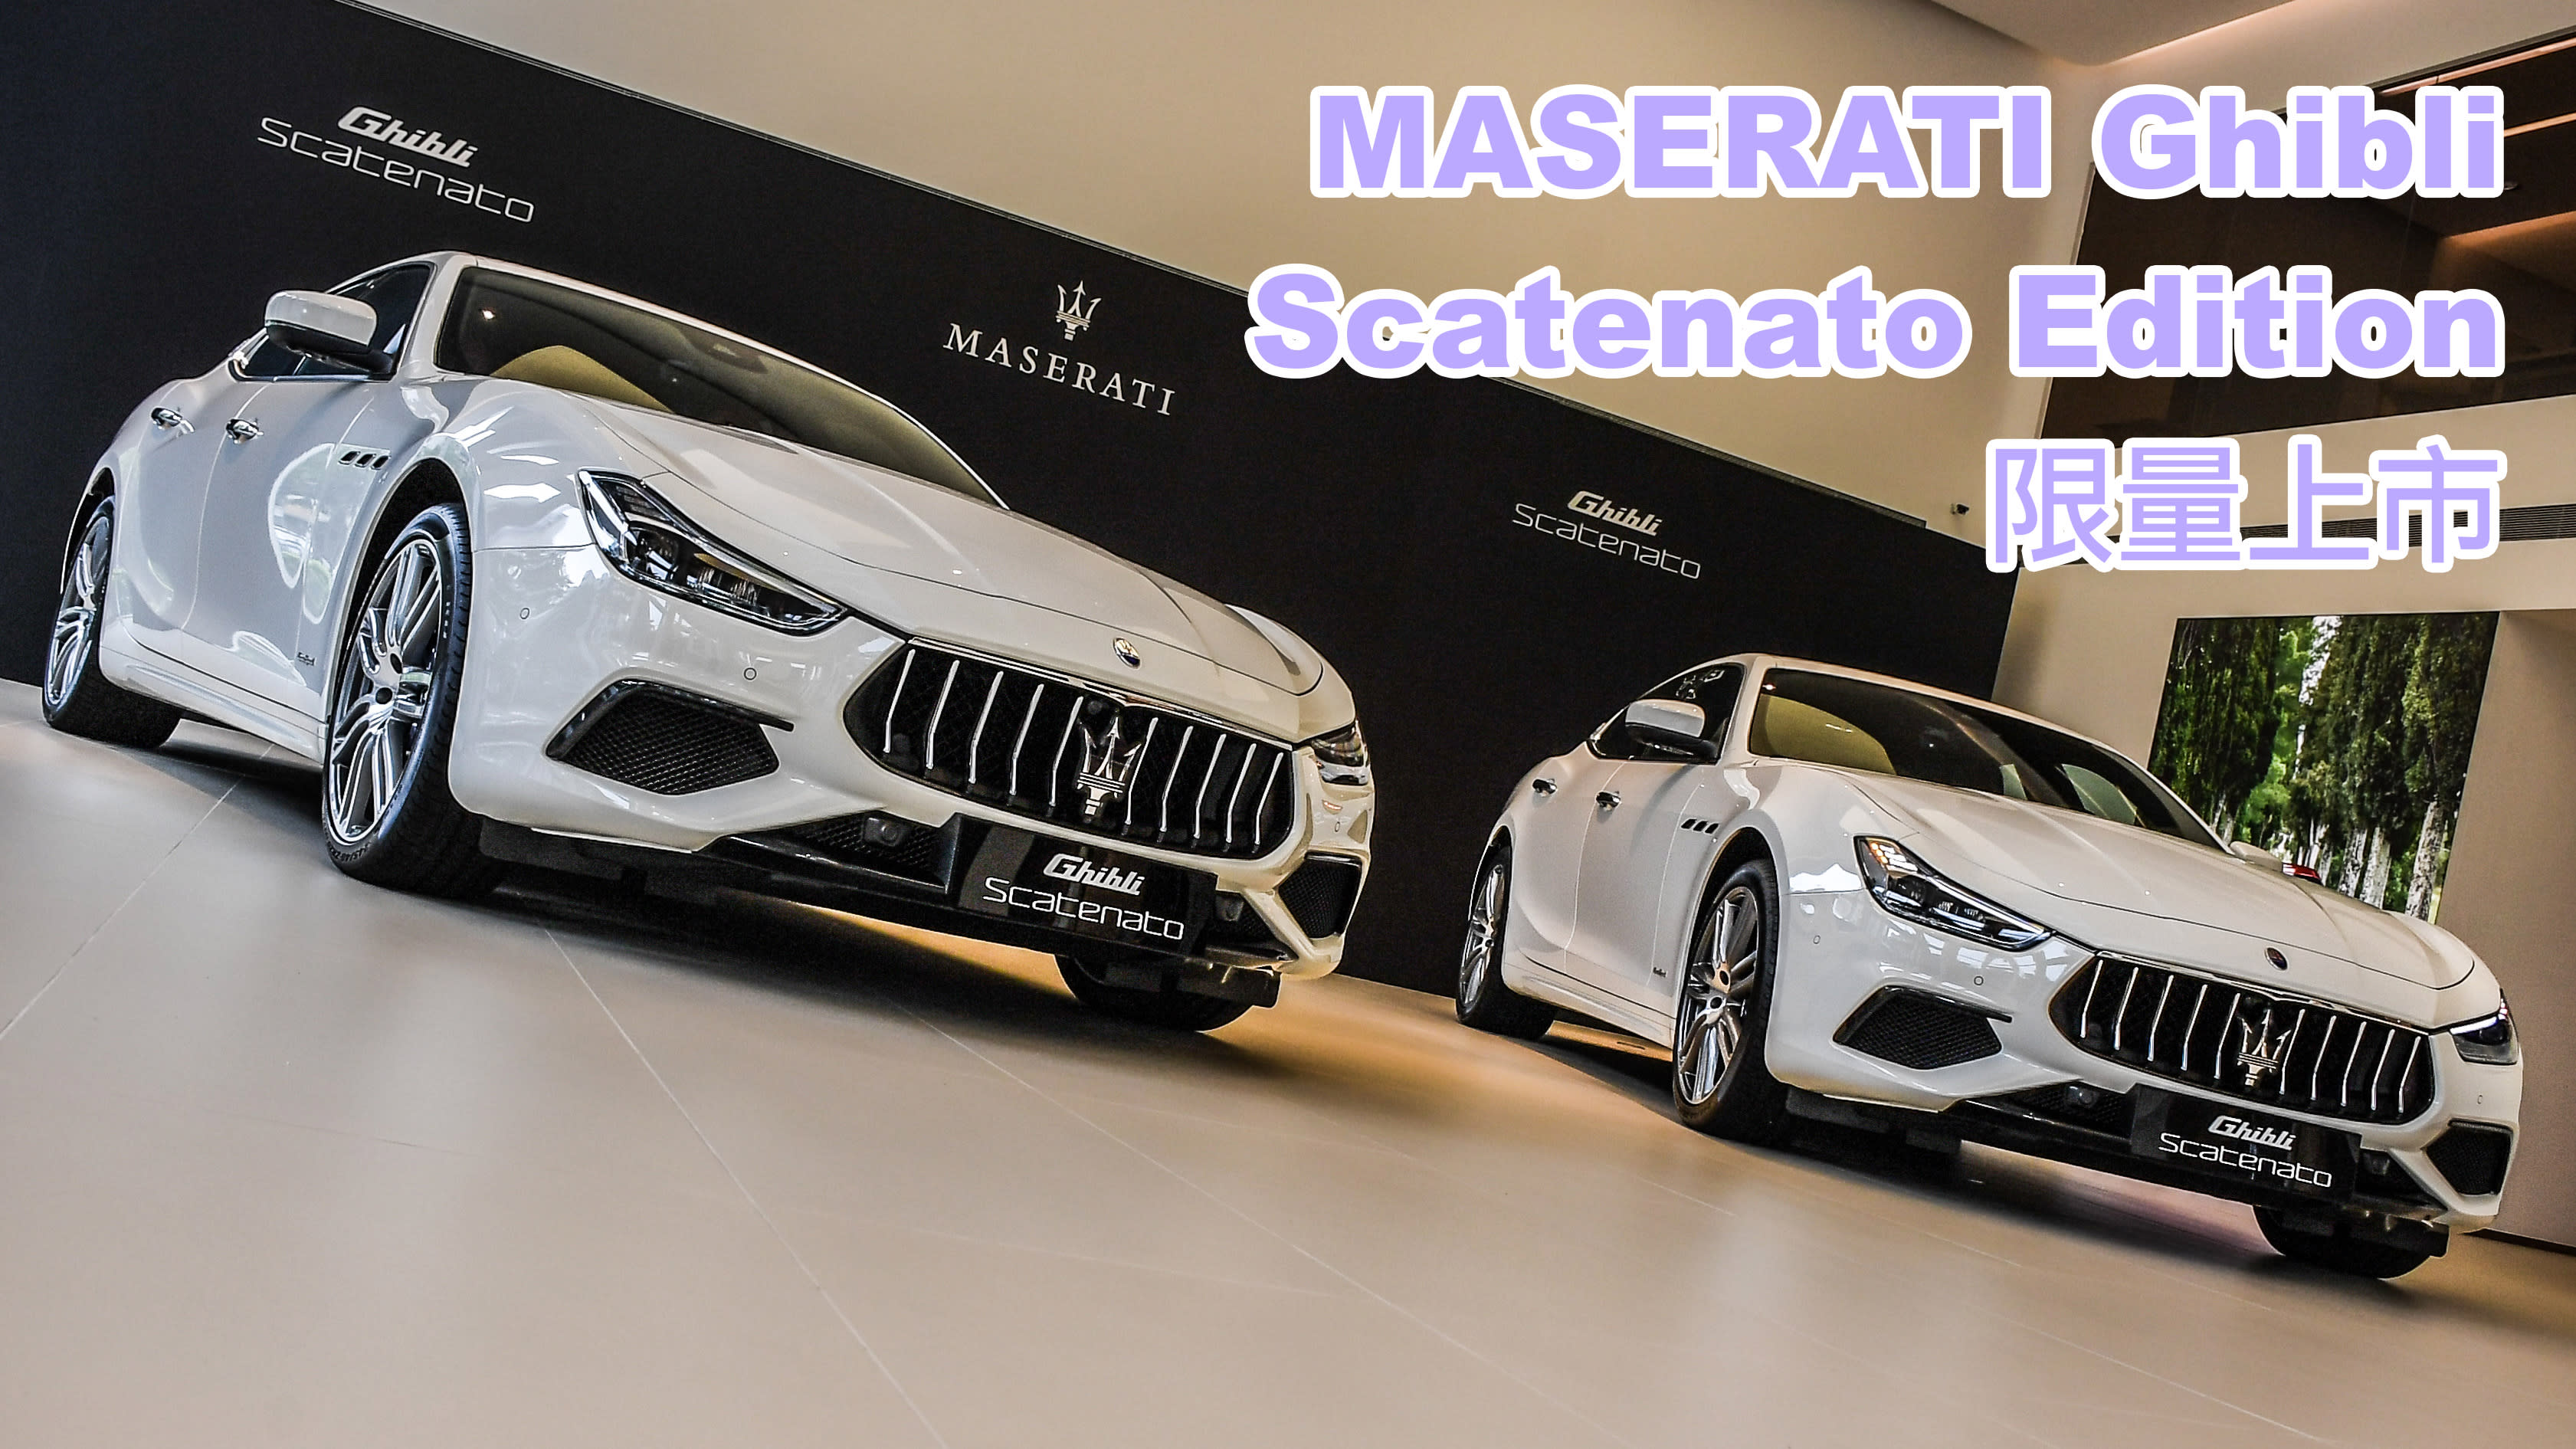 四門限量海神!疾風降臨|MASERATI Ghibli Scatenato Edition